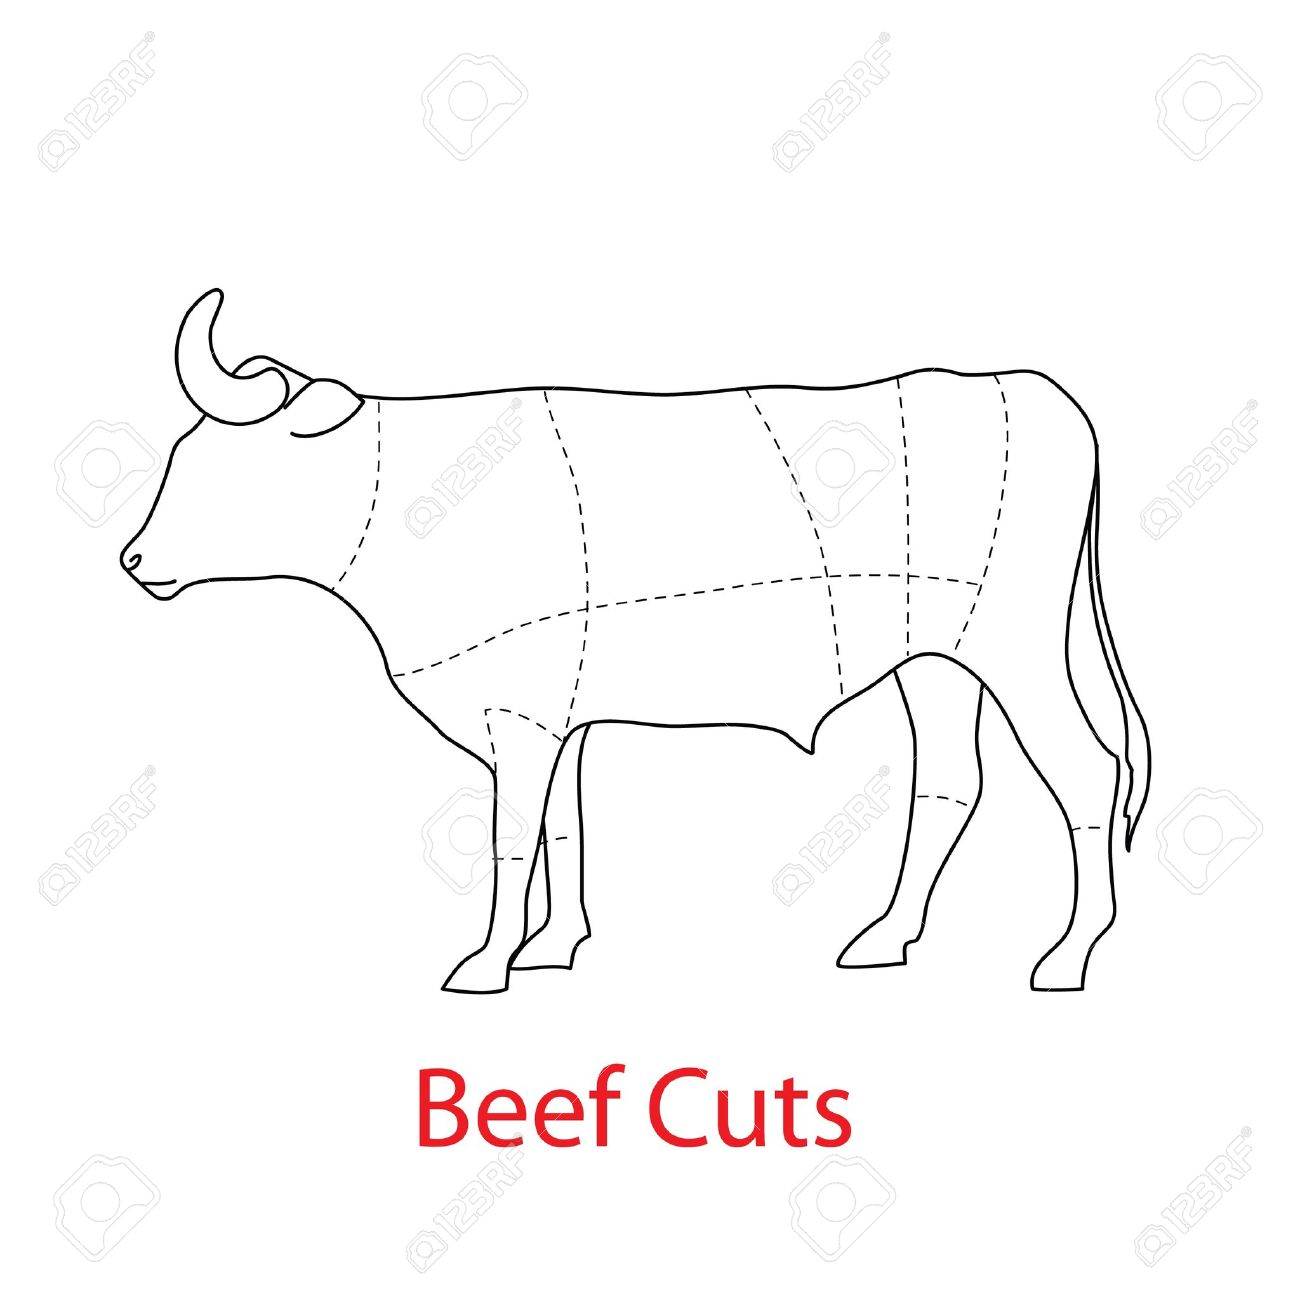 Scheme Of The Template - Beef Cuts. Royalty Free Cliparts, Vectors ...